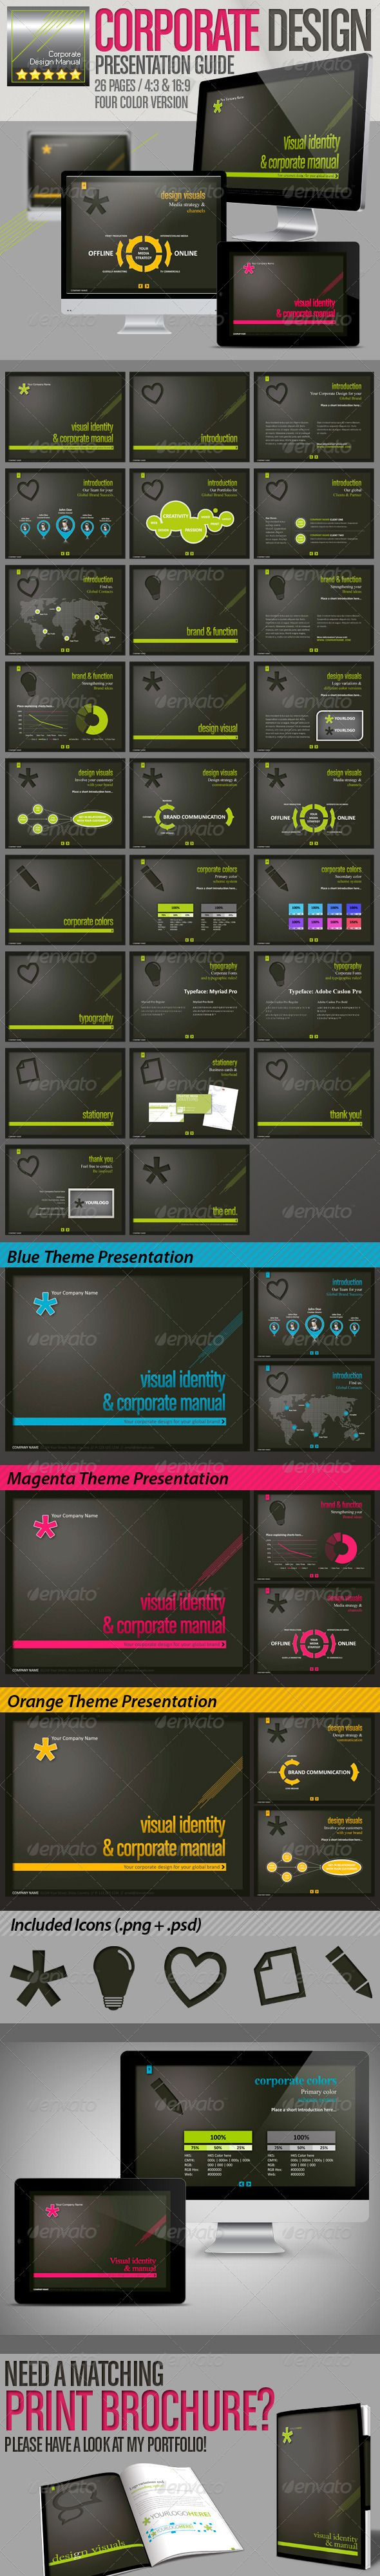 Corporate Design Manual // Design Presentation // Get the source files for download: http://graphicriver.net/item/corporate-design-manual-design-presentation-/2564289